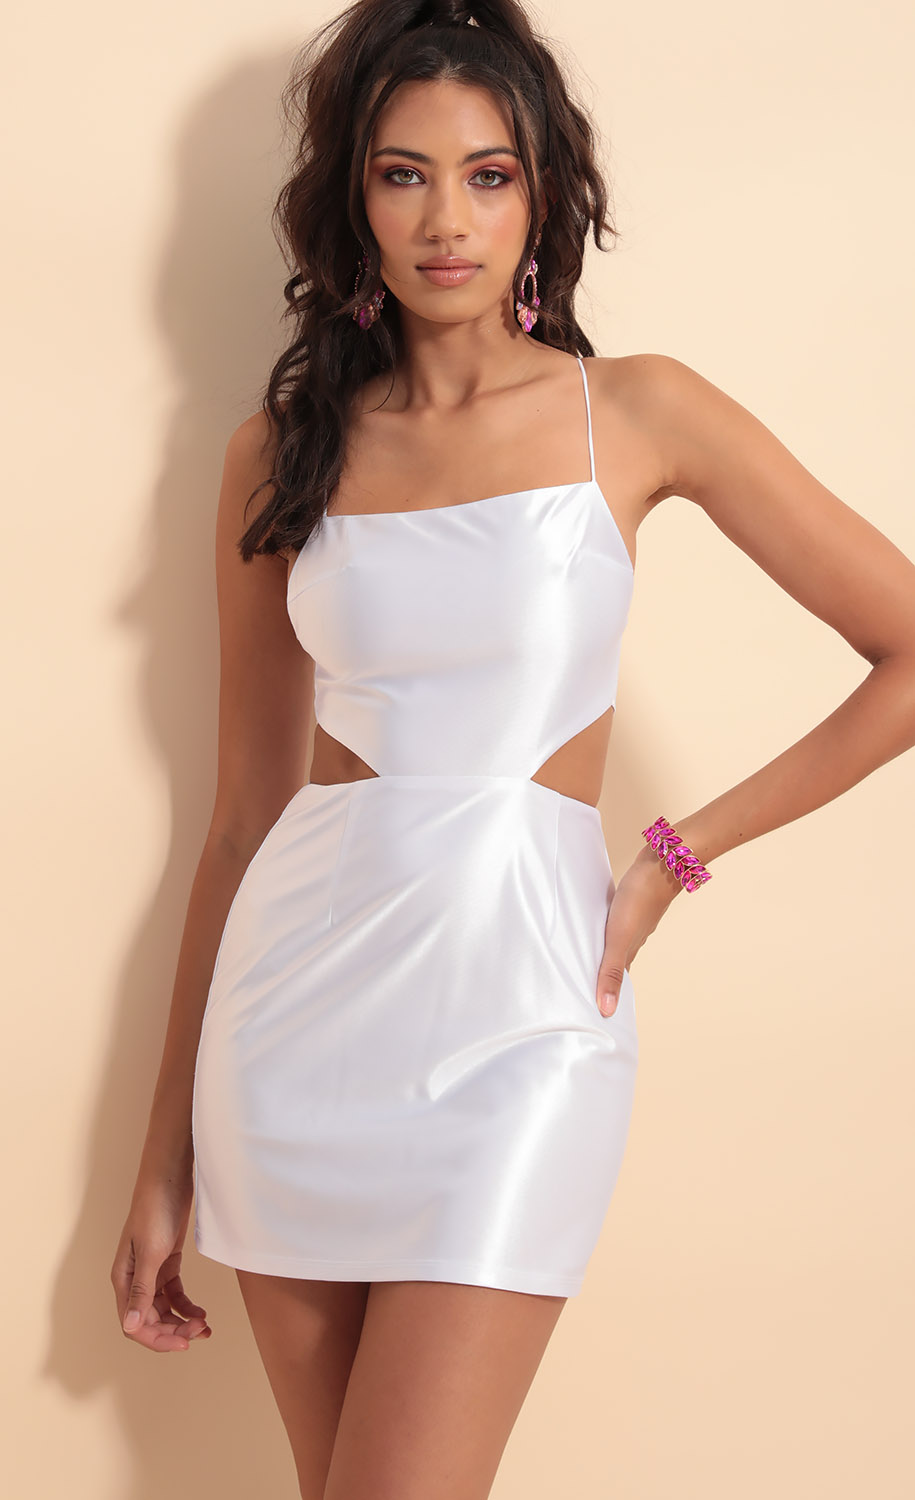 Lana Cutout Satin Dress in White